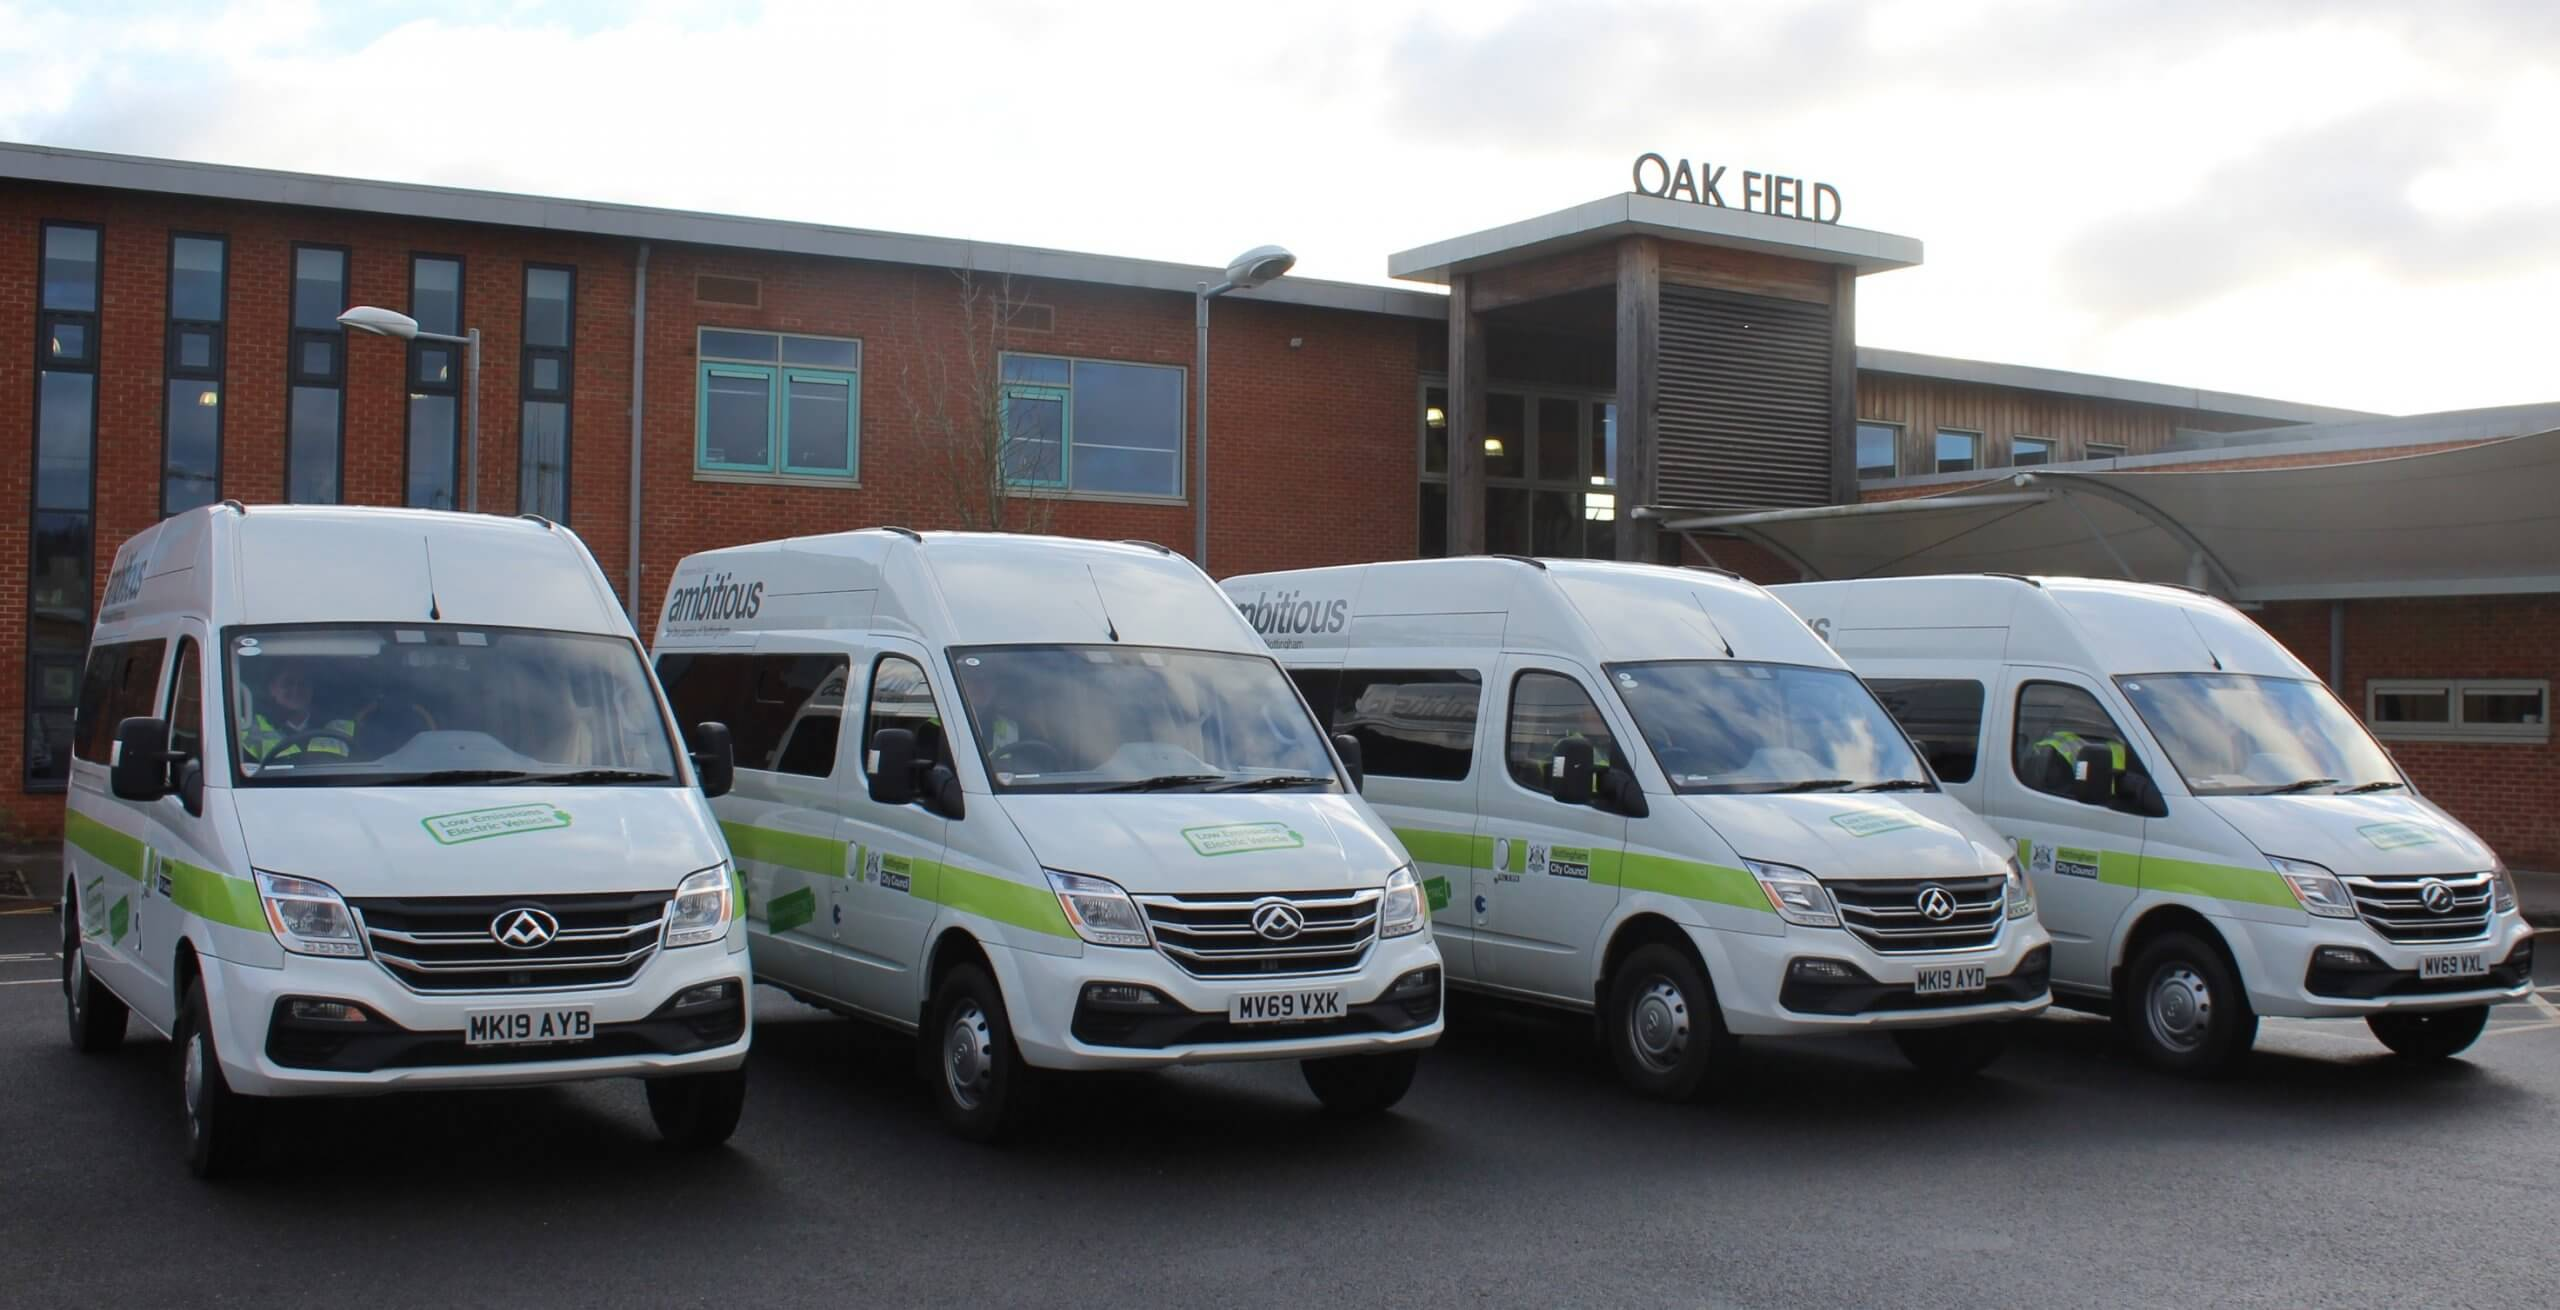 Four electric minibuses in front of Oakfield school